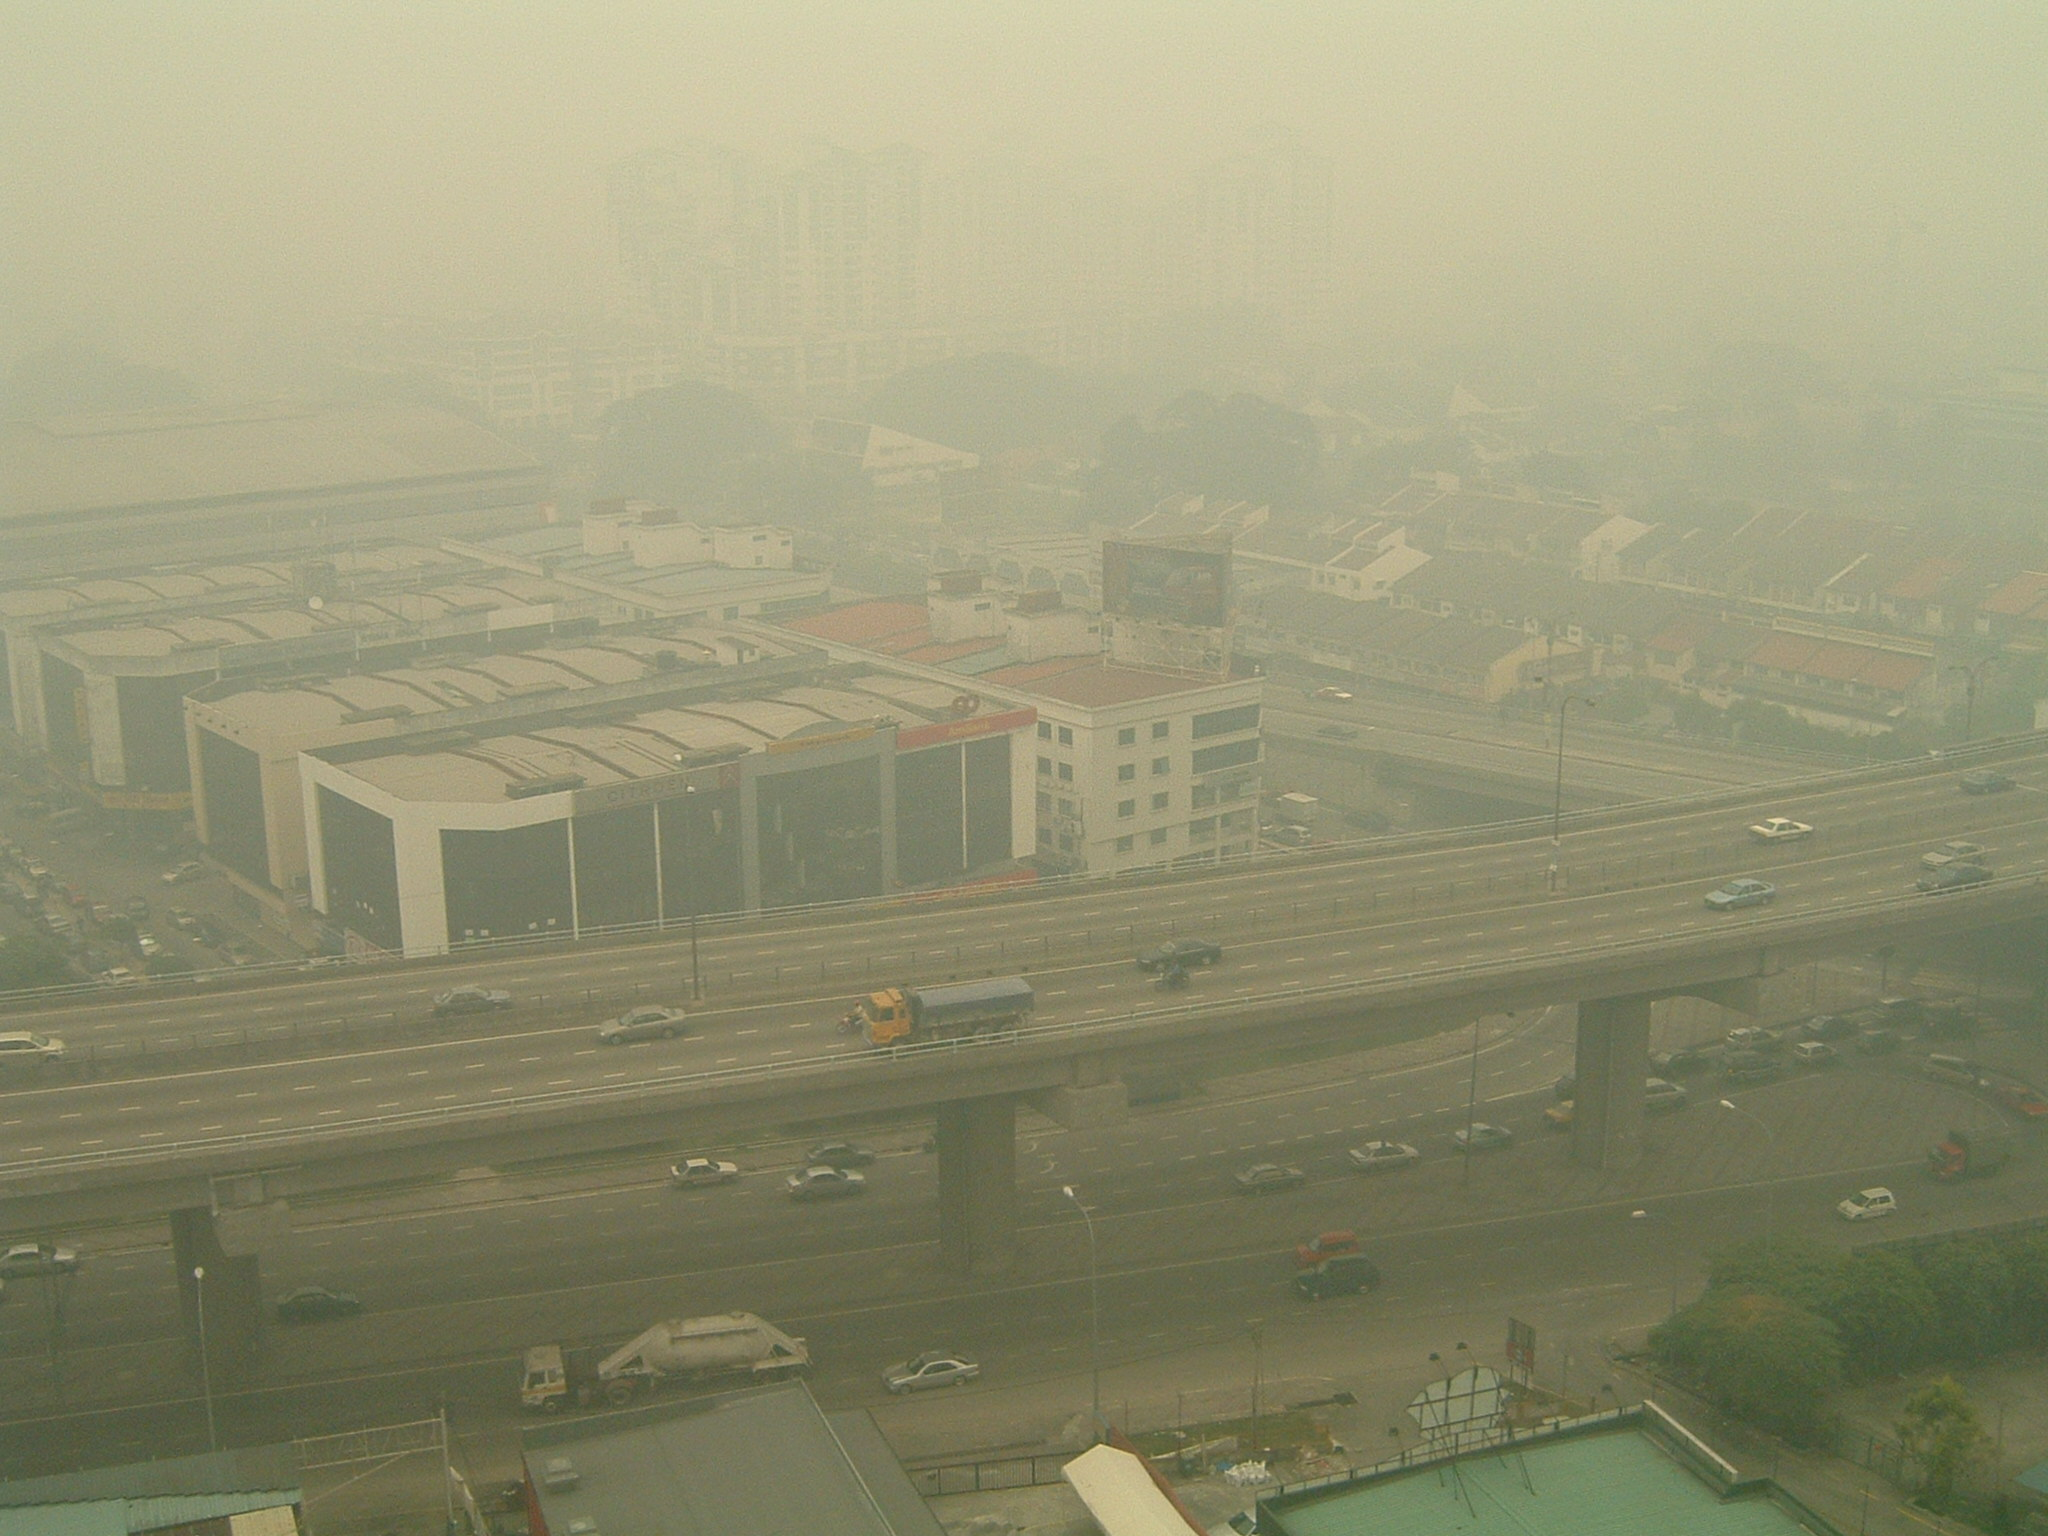 ASEAN Agreement on Transboundary Haze Pollution - Wikipedia, the.